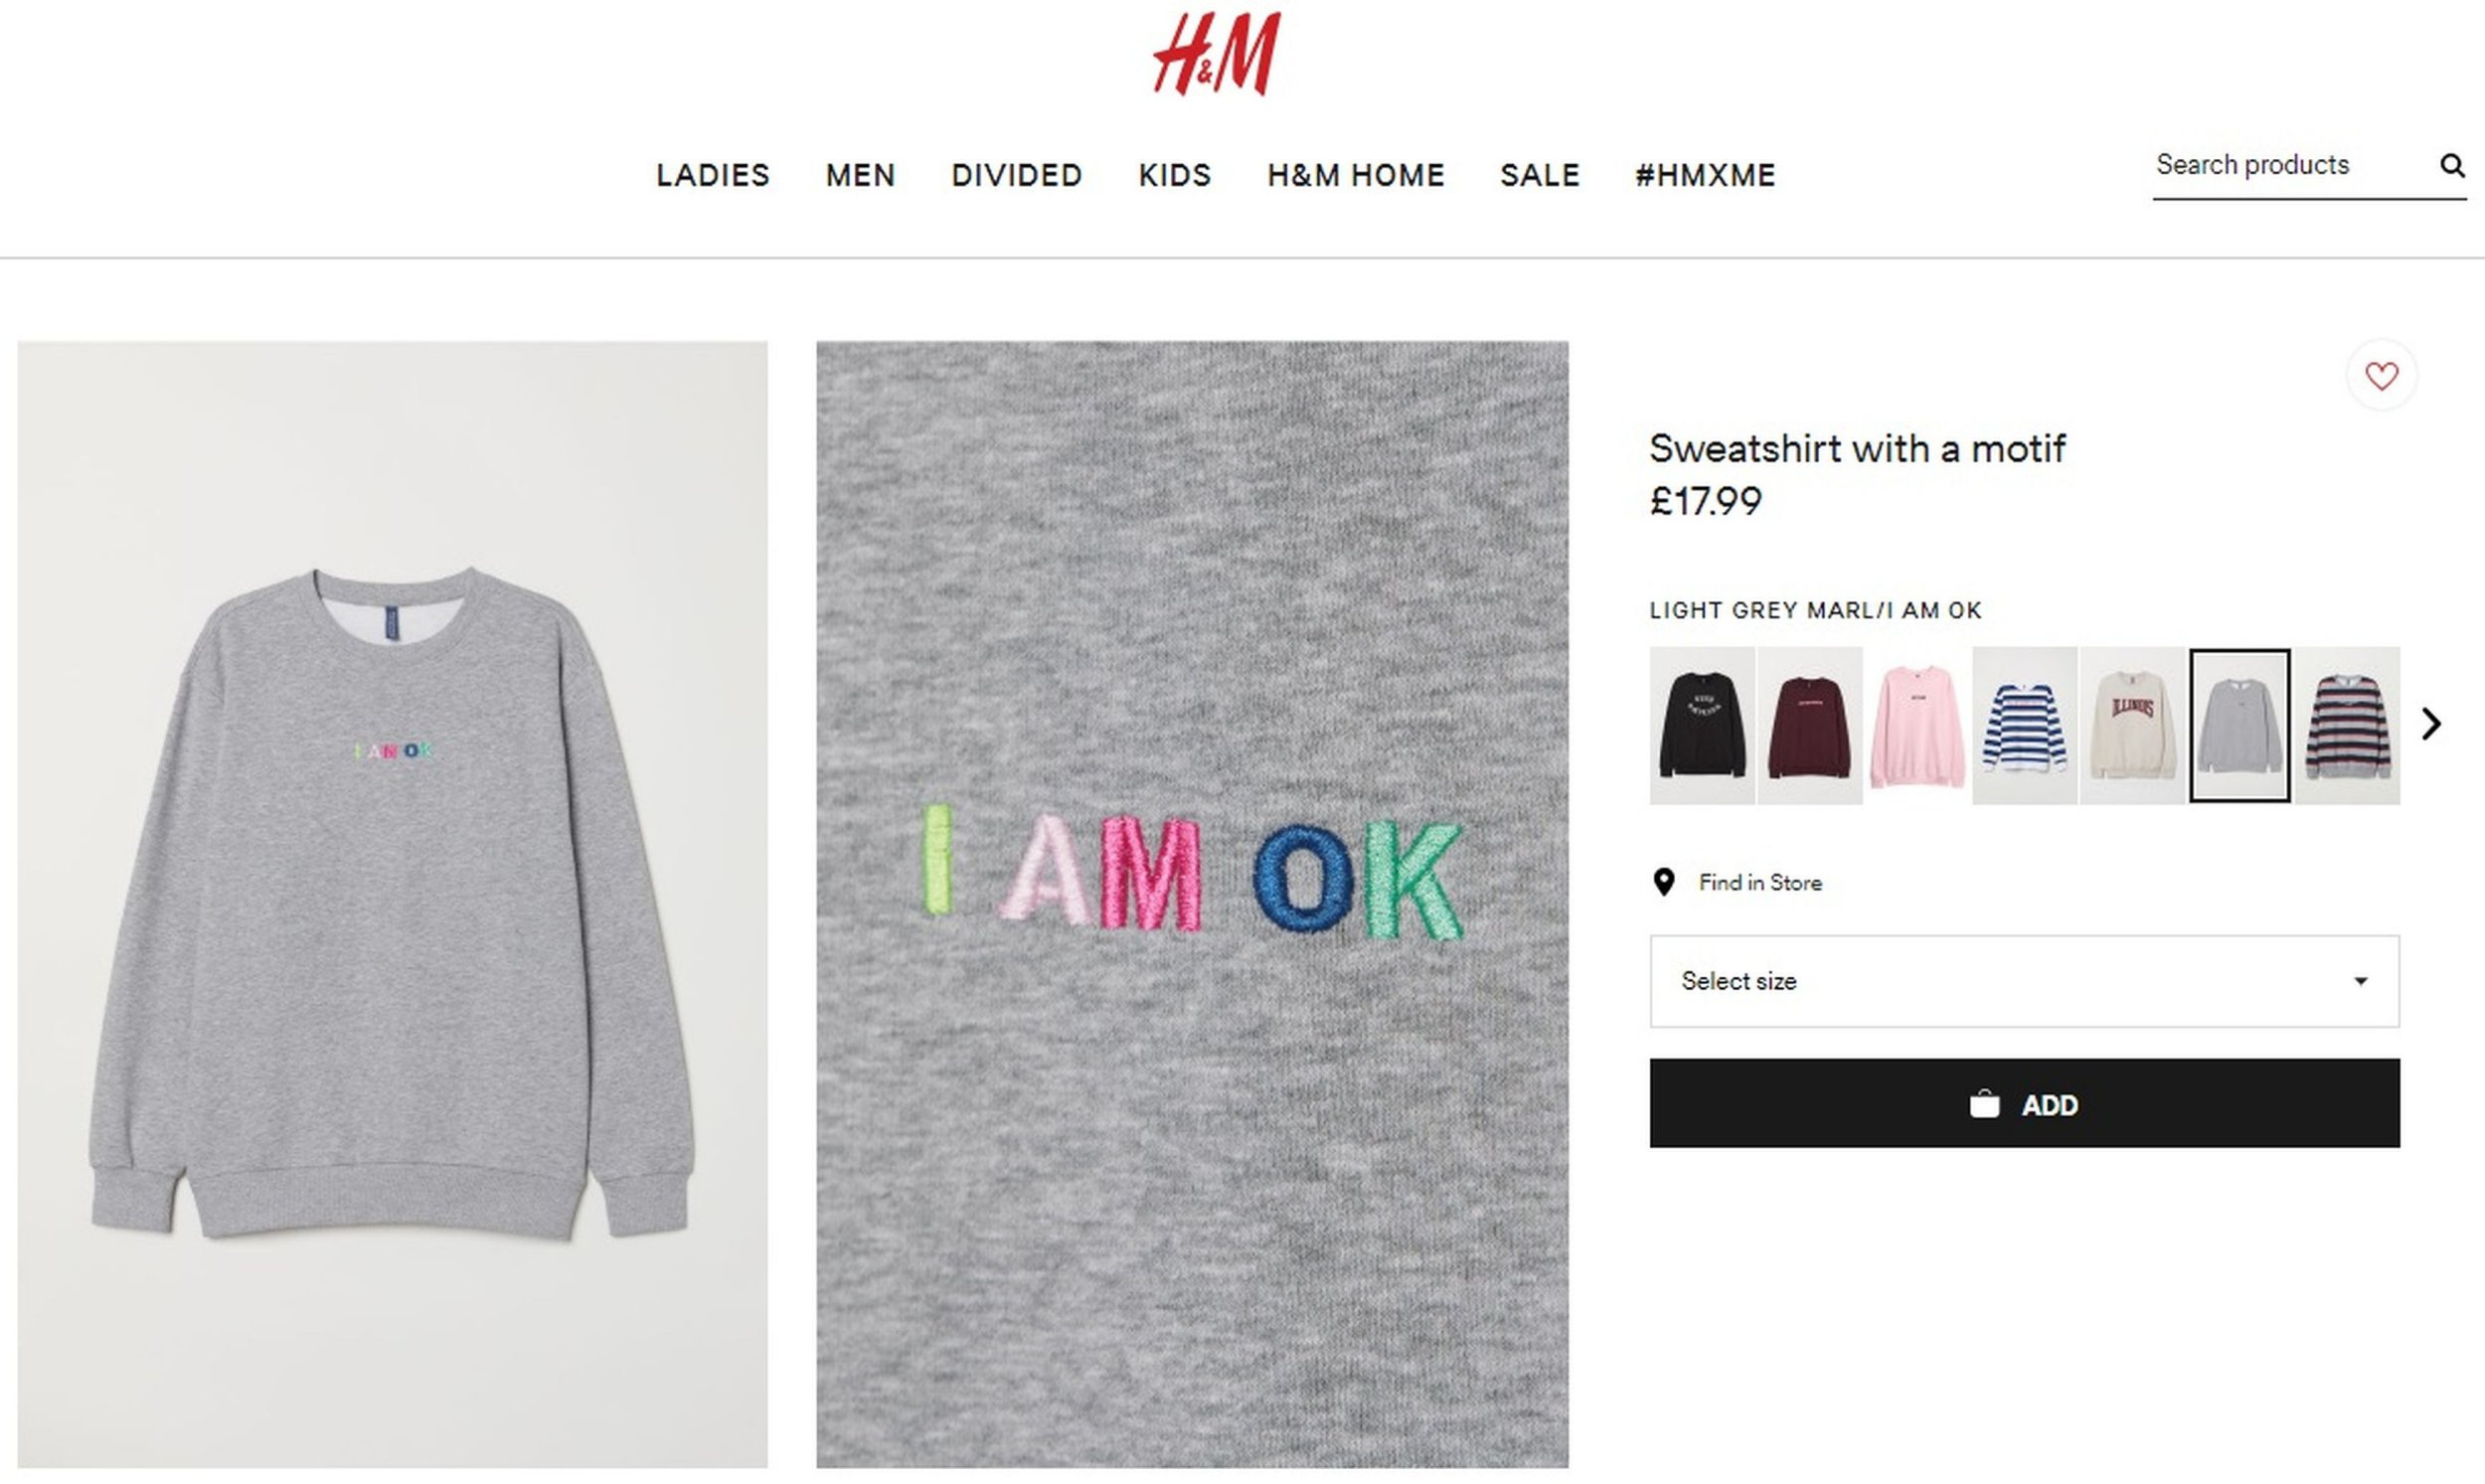 PIC FROM Kennedy News and Media (PICTURED: SCREENSHOT FROM H&M WEBSITE SHOWING SLOGAN SWEATSHIRT) High street fashion chain H&M have been accused of mocking male mental health awareness campaign 'It's OK not to be OK' with a 'sarcastic' jumper that reads 'I AM OK'. The ??17.99 grey sweater was spotted by shopper Ethan Bews, 27, while browsing on Sunday and he believes it appears to brag that the wearer is 'OK' as opposed to mentally ill. The recruitment consultant believes the bizarre slogan is making an inappropriate 'play' on the campaign that sought to tackle male suicides, who account for 75% of all those who take their lives.SEE KENNEDY NEWS COPY - 0161 697 4266